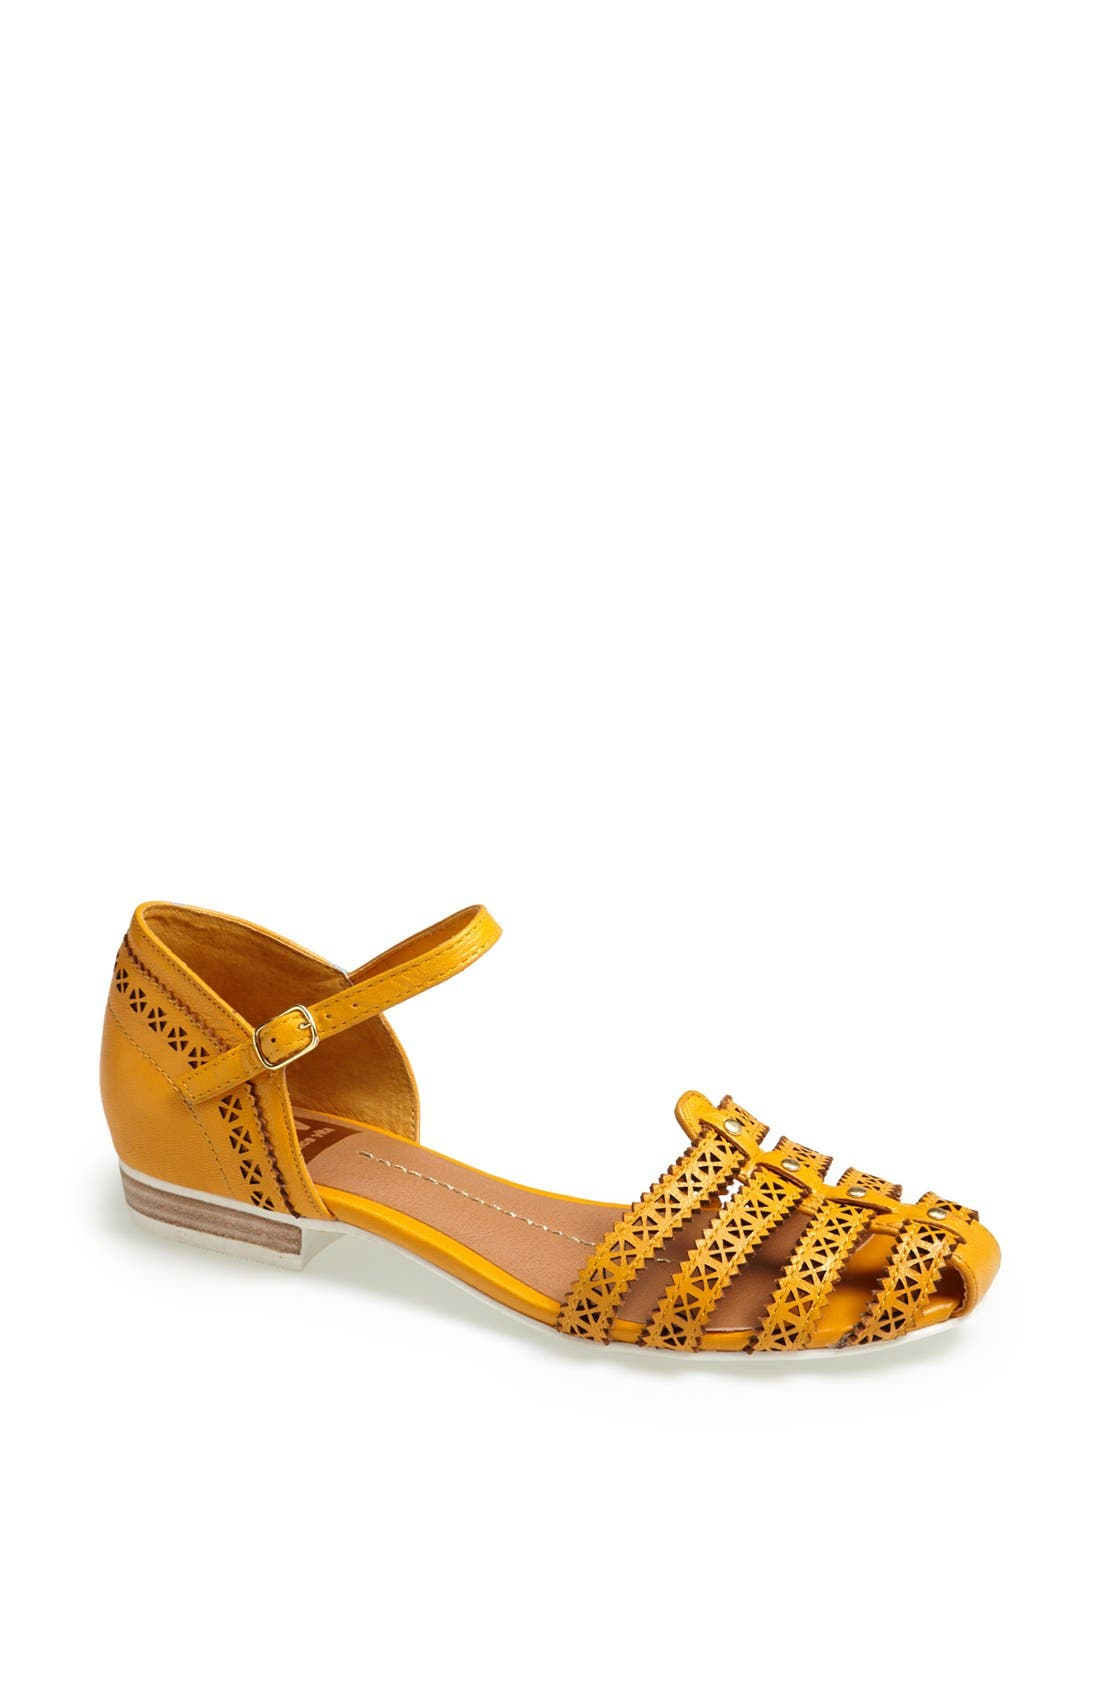 Main Image - DV by Dolce Vita 'Ebony' Perforated Flat